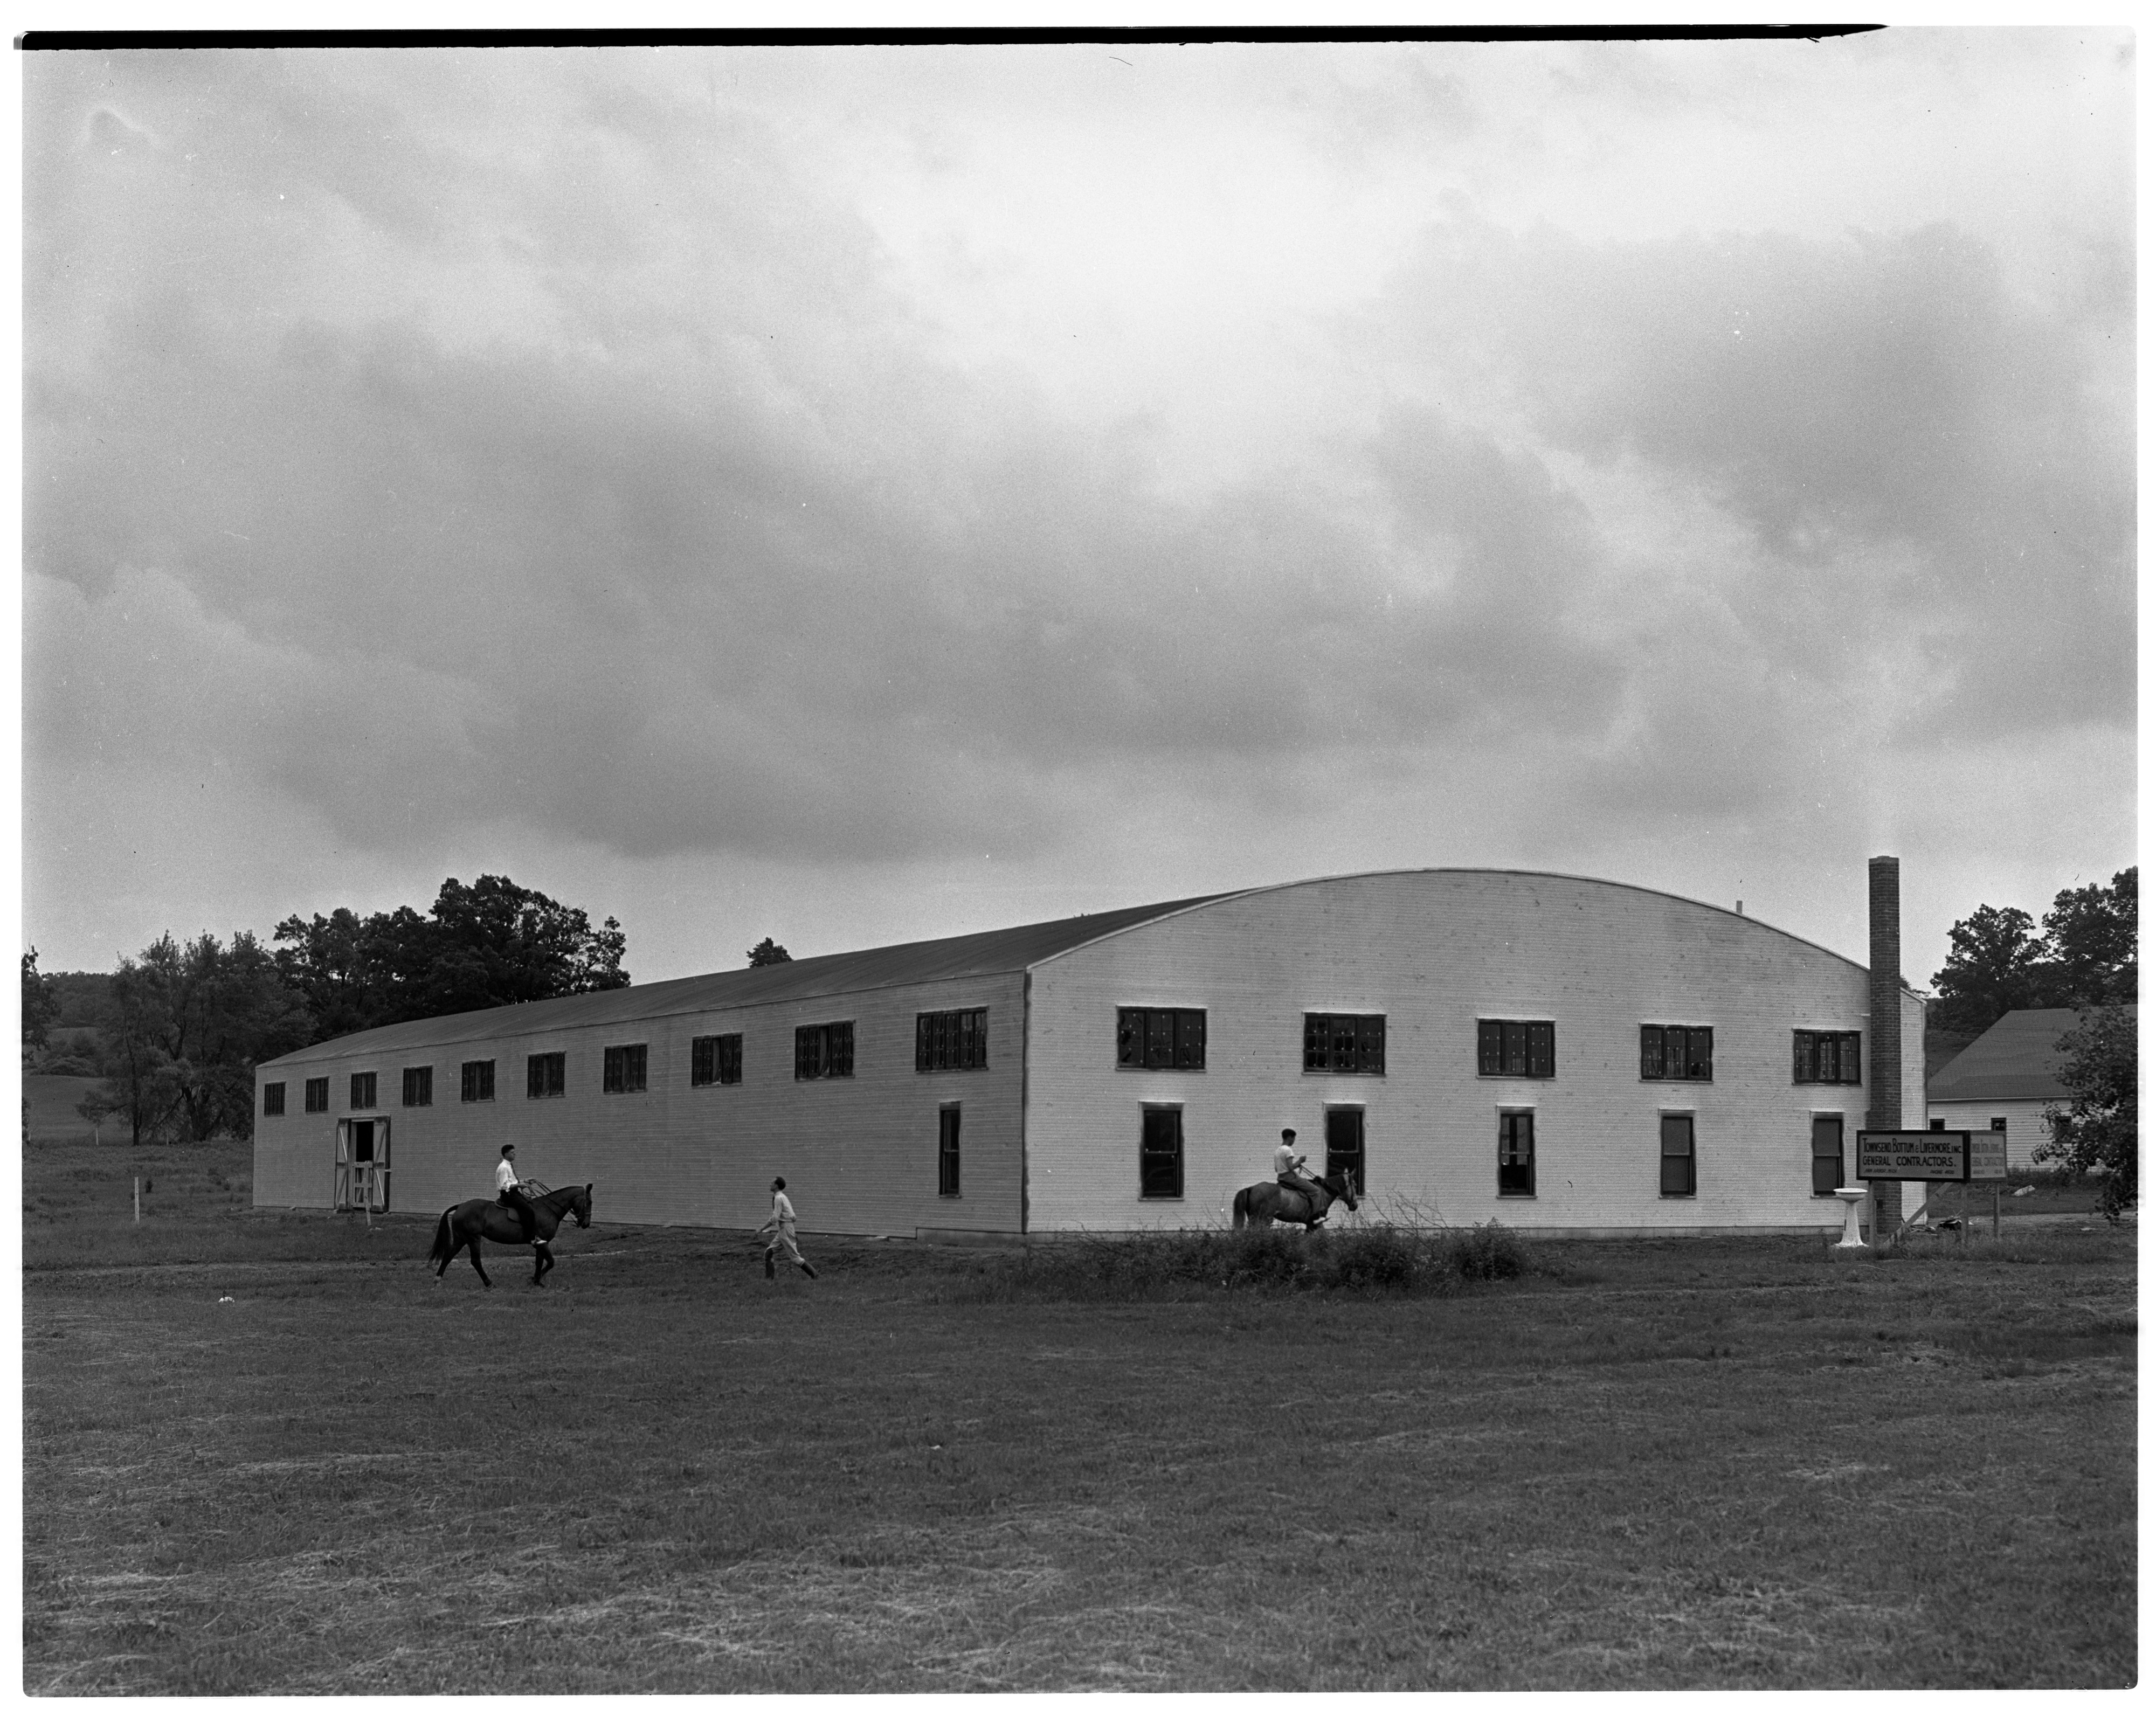 New Indoor Riding Arena At Golf Side Riding Academy, June 1939 image